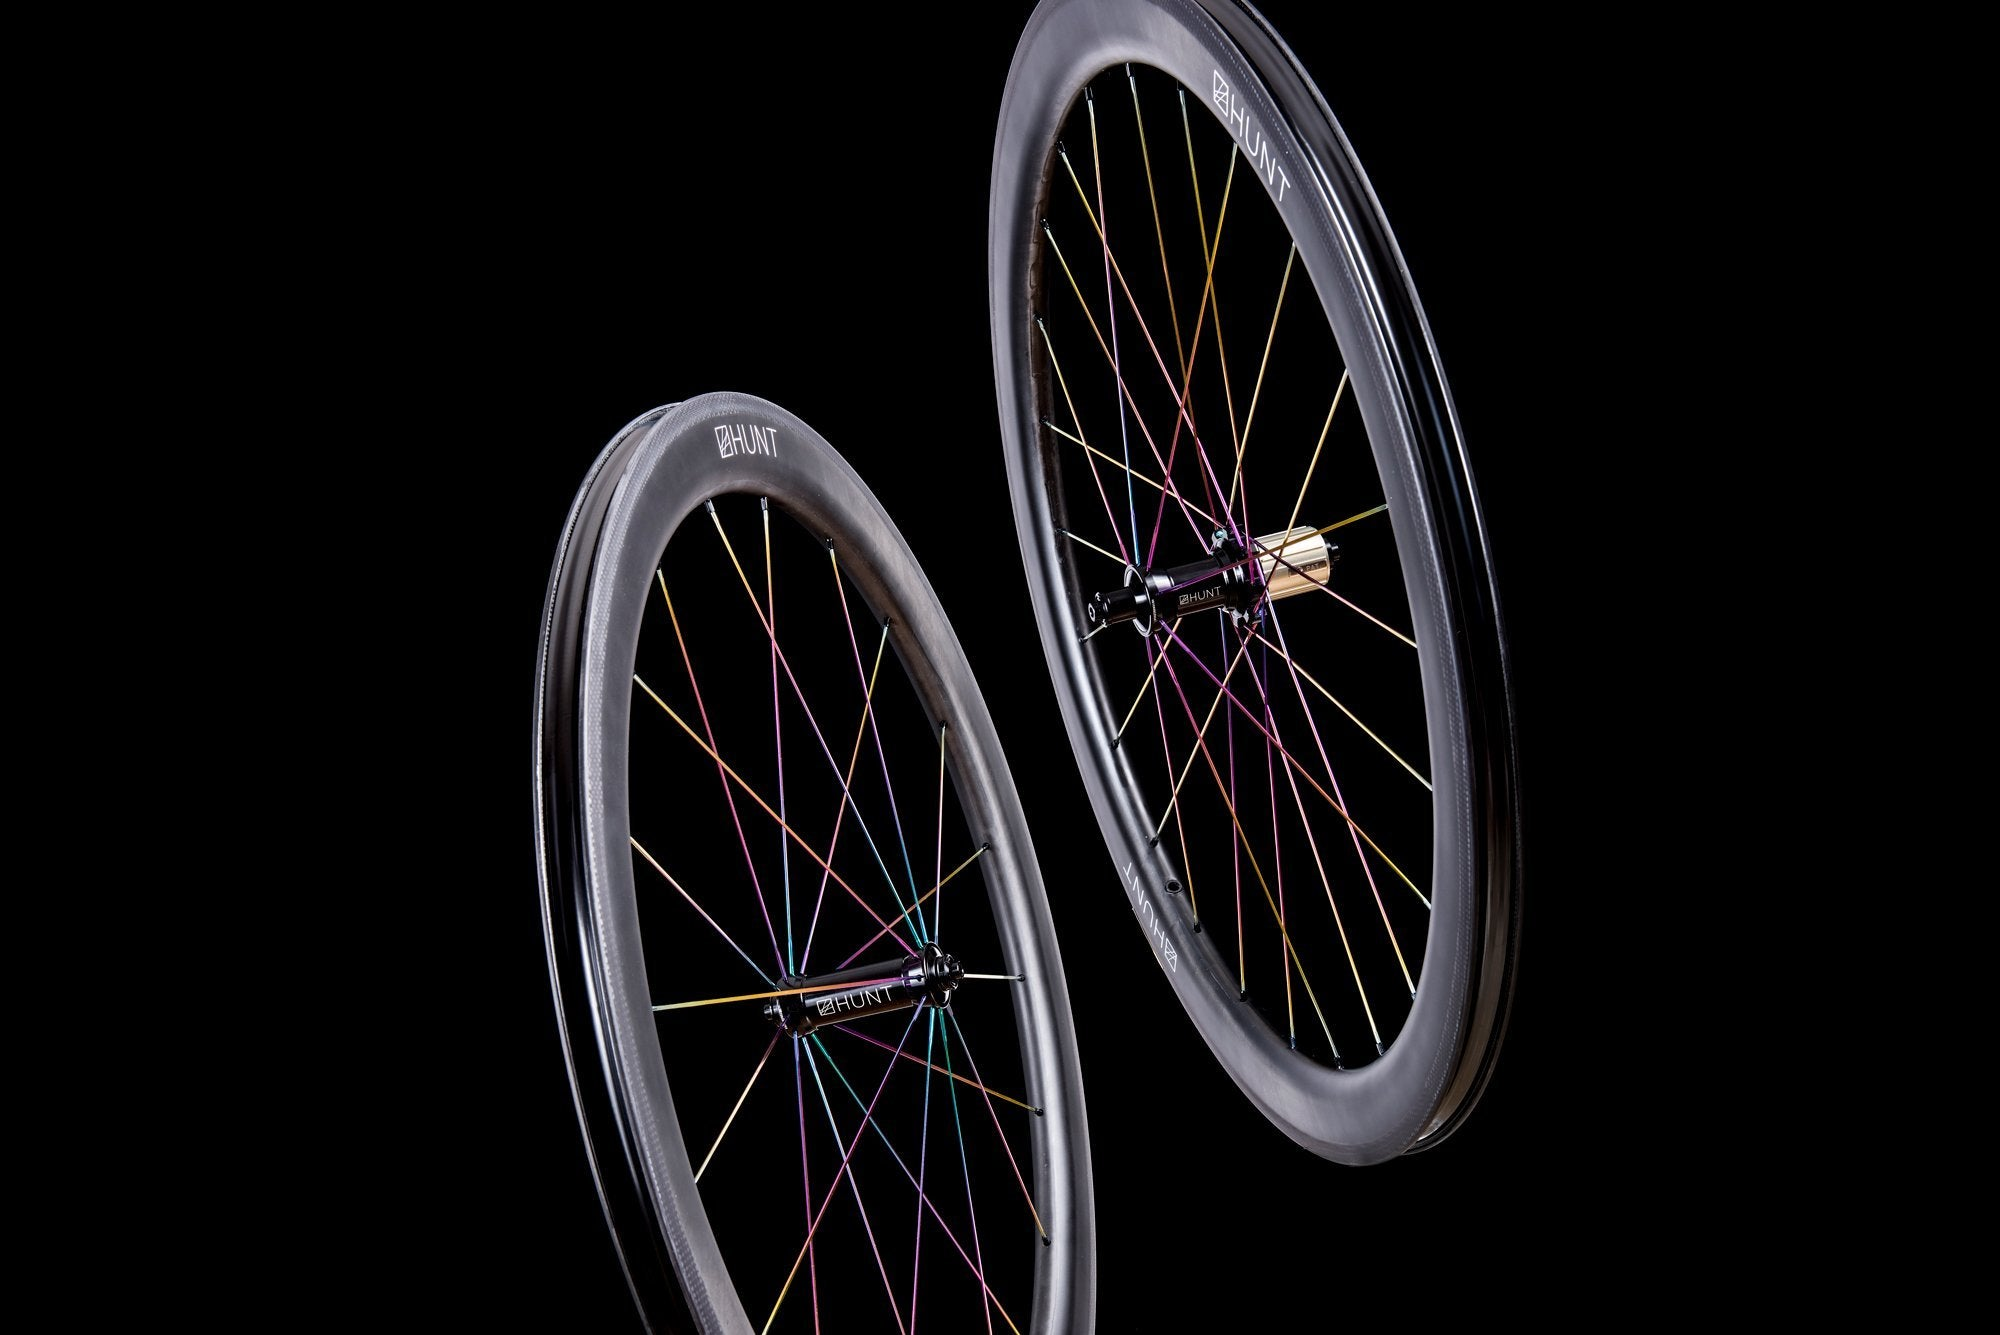 <h1>Oil-Slick Spokes</h1><i>We can also give the spokes a Ti-Nitride coating which not only gives them an eye-catching oil slick rainbow look but also improves wear and corrosion resistance due to the super-hard micro hardness of this coating. The coating is multi-compounded by ceramics and transition metal, so the bonding force between coating and base is immensely improved. This results in a really long lasting finish.</i>